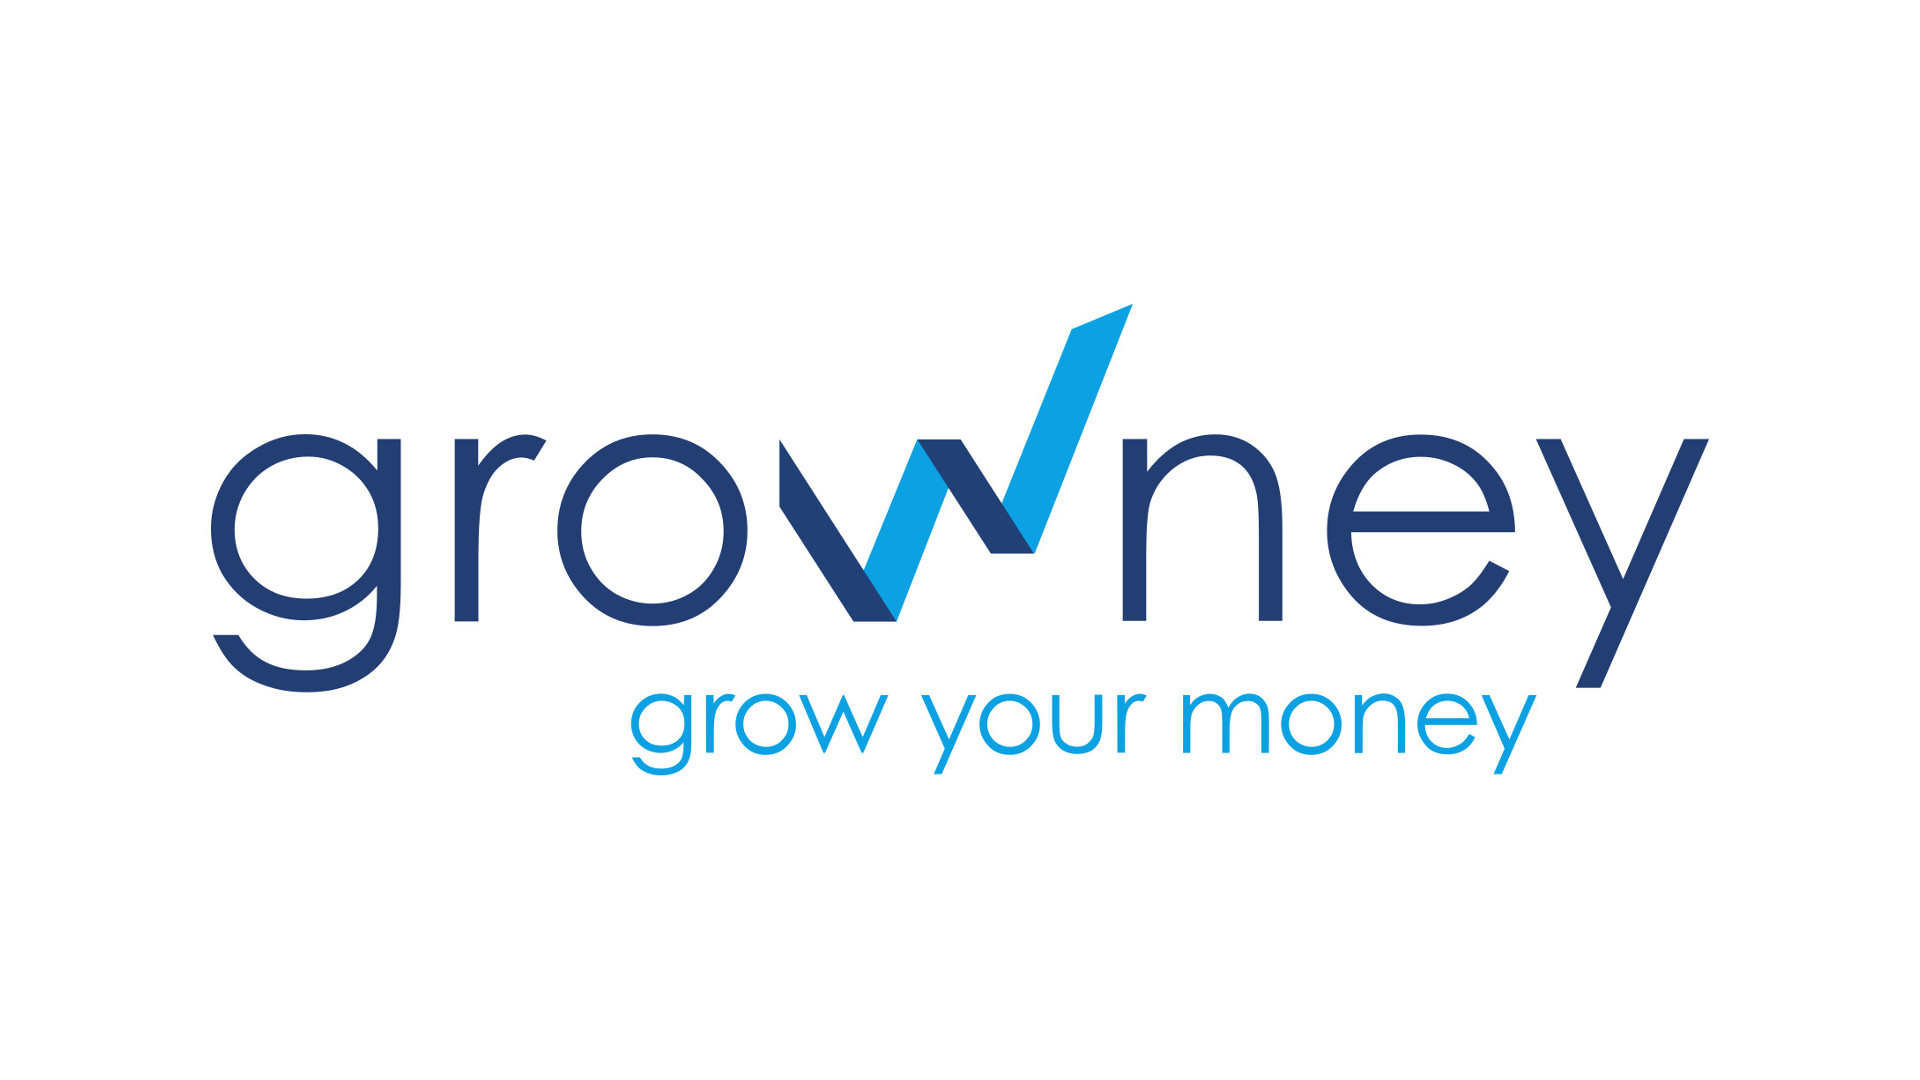 growney logo robo advisor